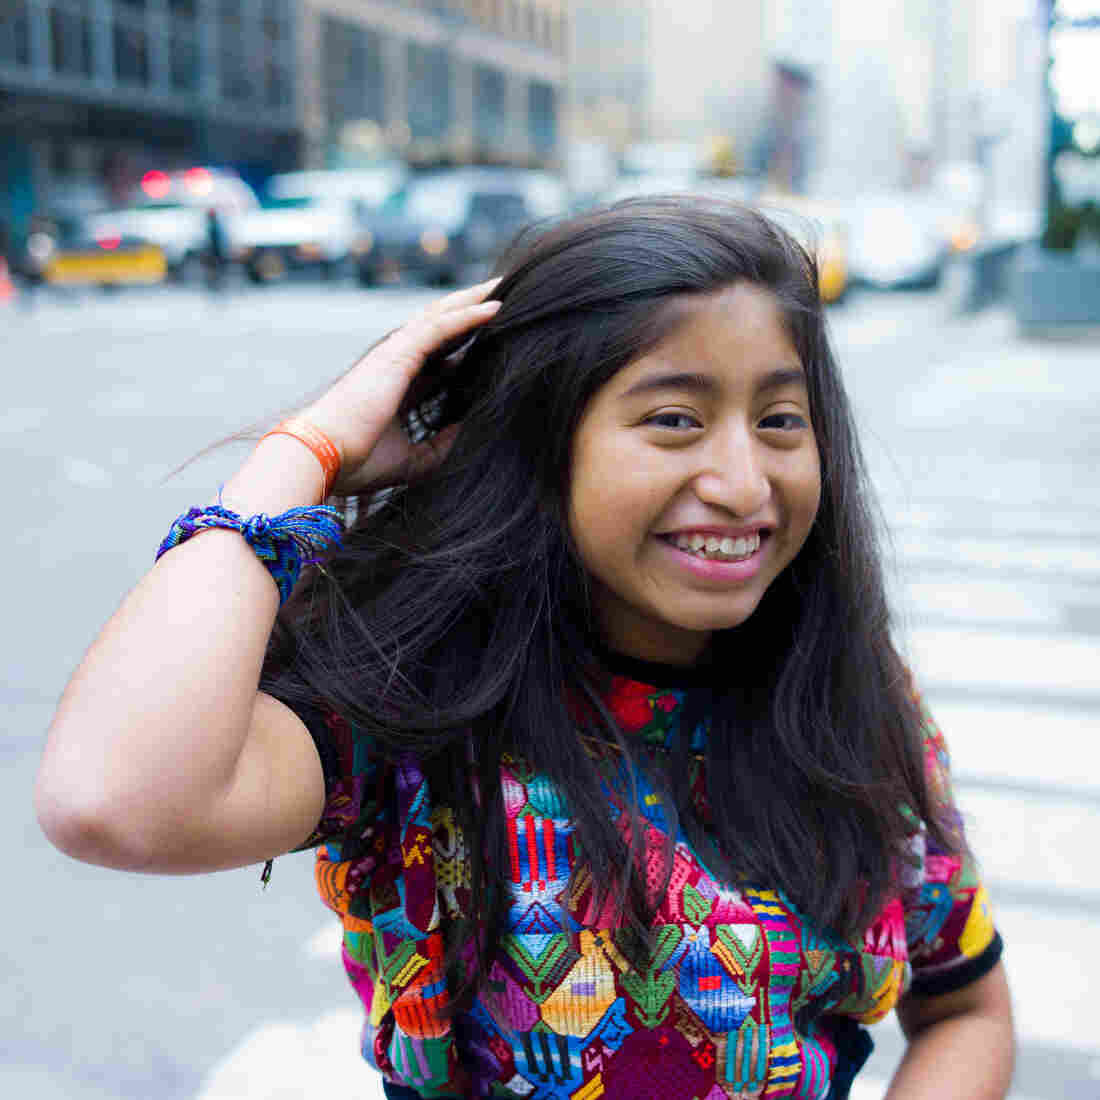 Meet The 15-Year-Old From Rural Guatemala Who Addressed The U.N.